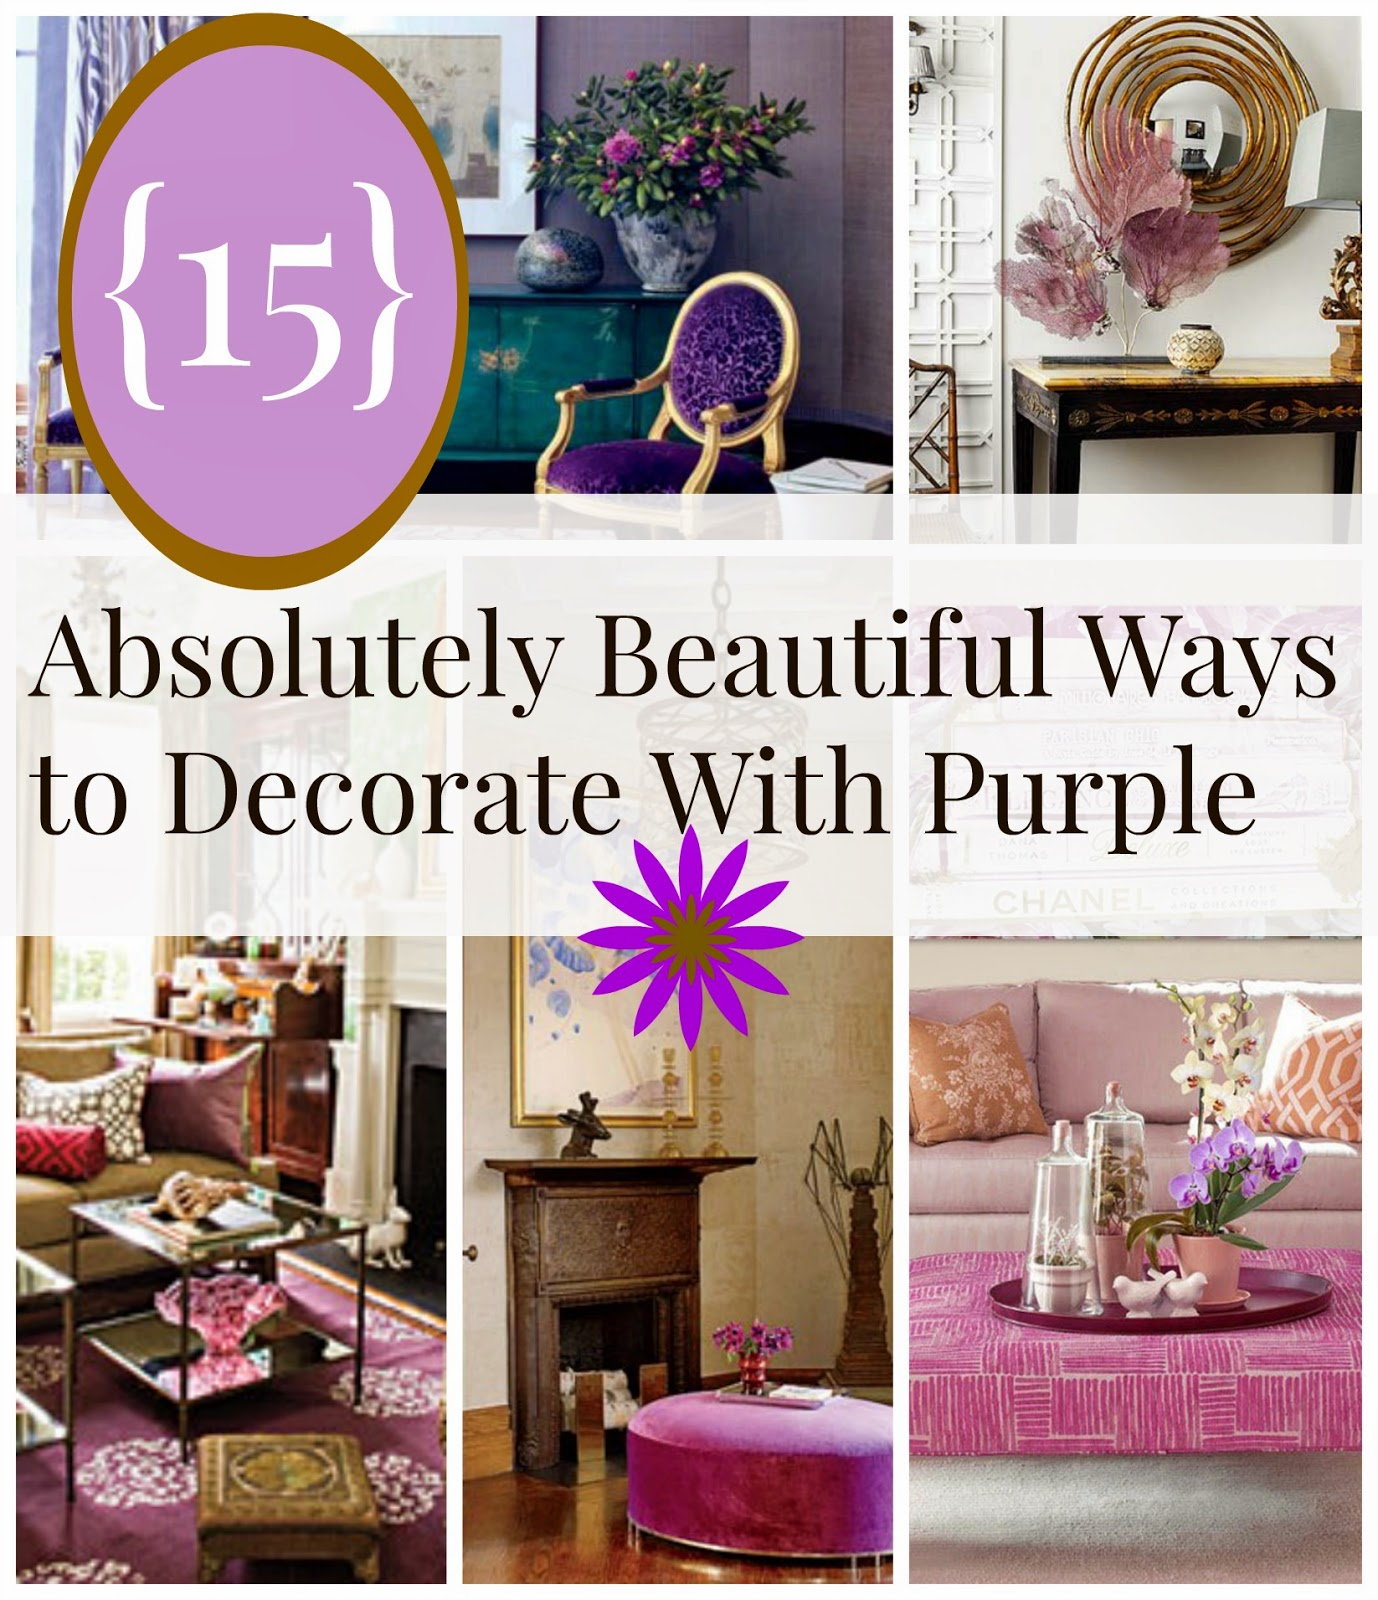 Pinterest Home Decor 2014: {15} Beautiful Ways To Decorate Your Home With Purple